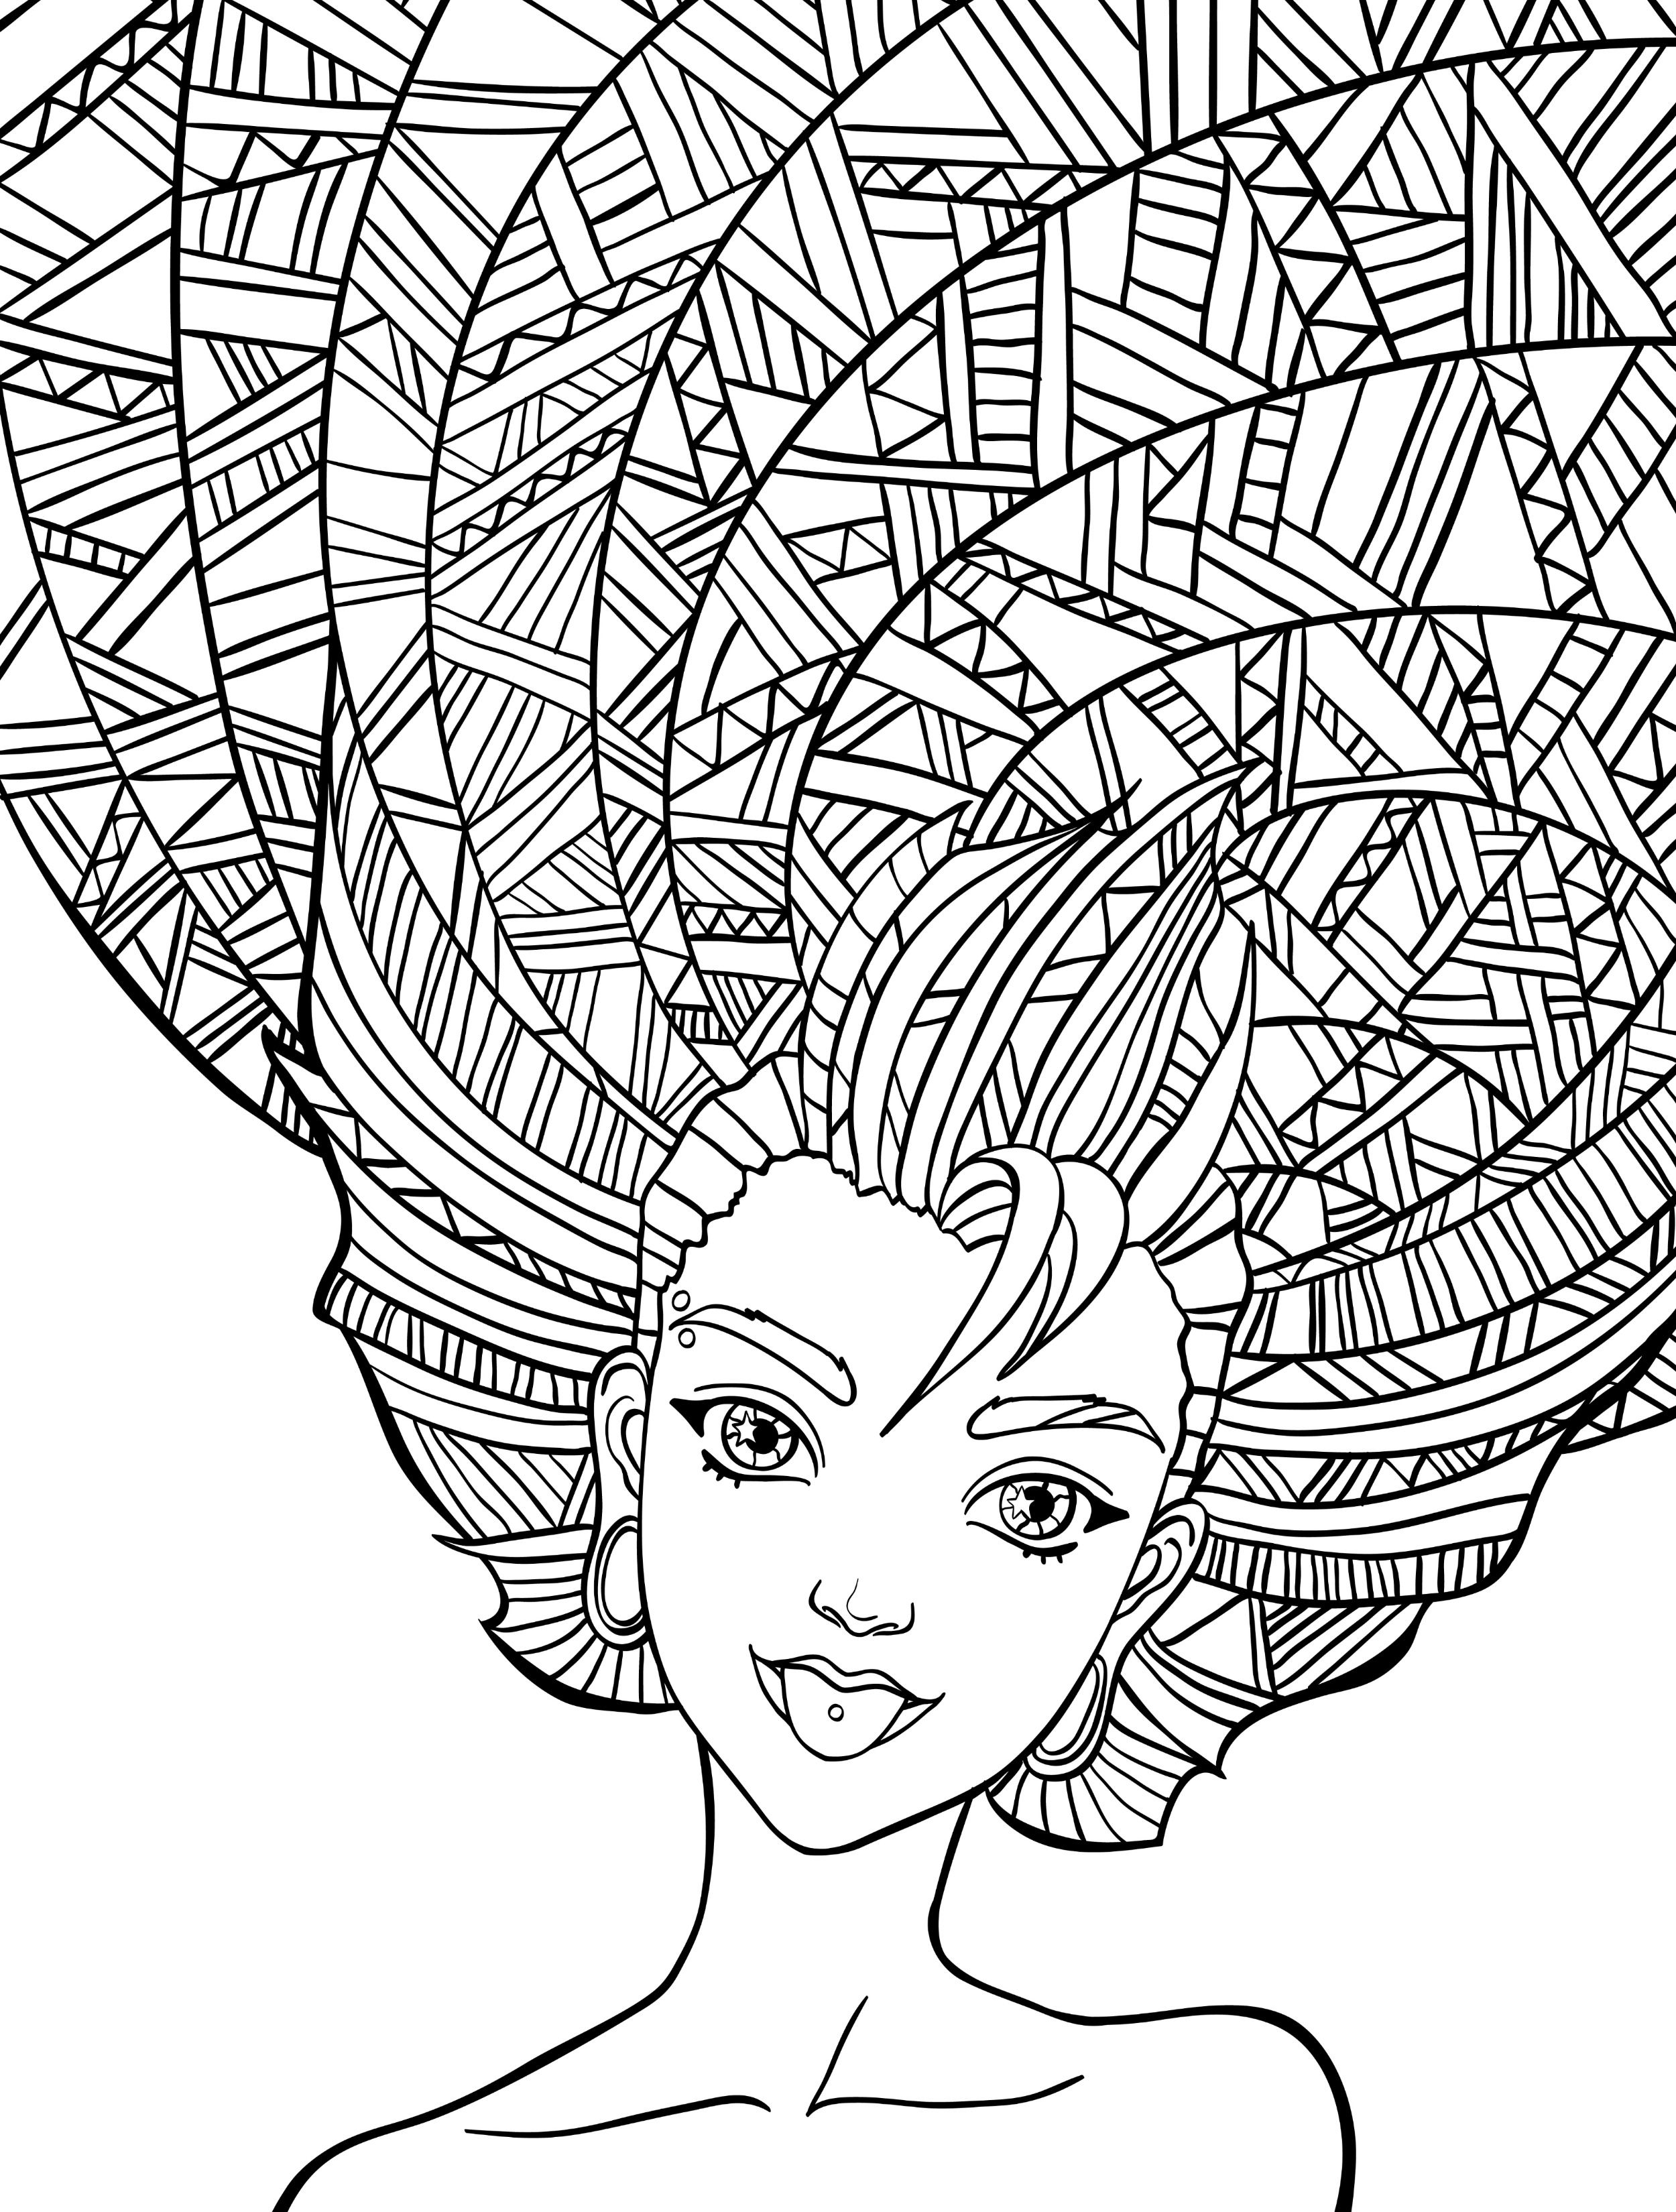 10 Crazy Hair Adult Coloring Pages Page 9 of 12 Adult coloring